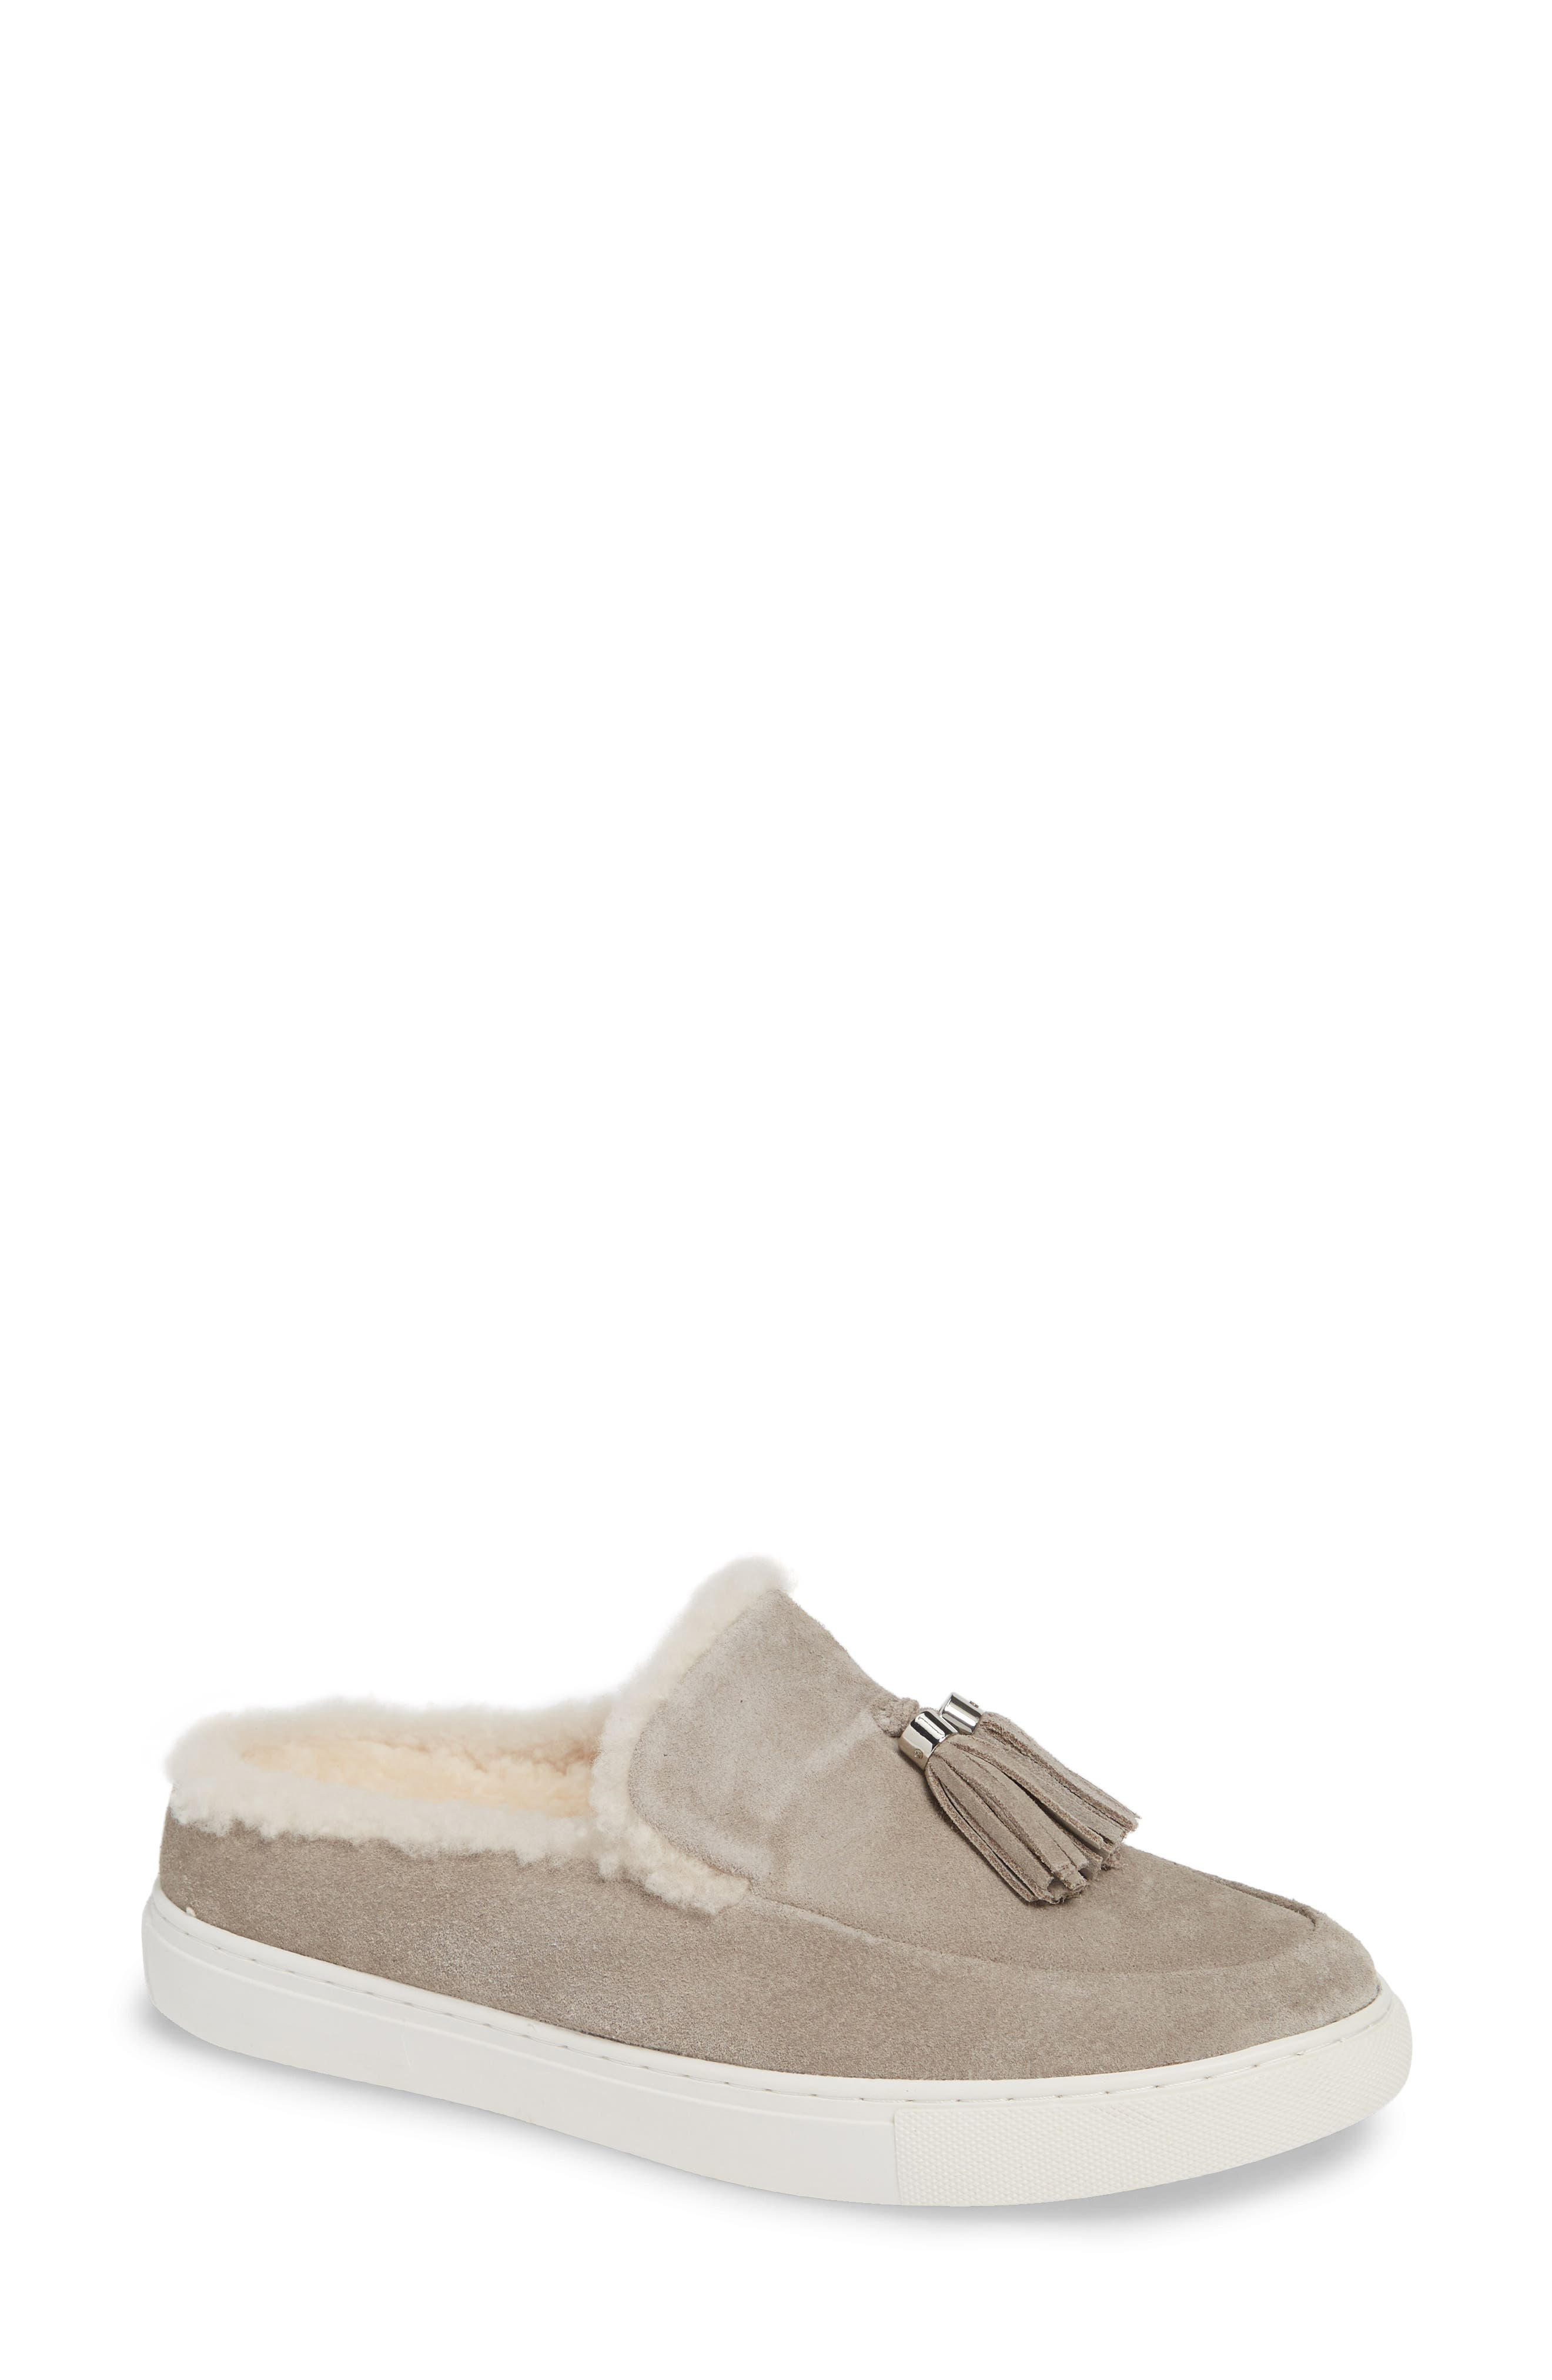 GENTLE SOULS BY KENNETH COLE, Rory Loafer Mule, Main thumbnail 1, color, STONE NUBUCK LEATHER